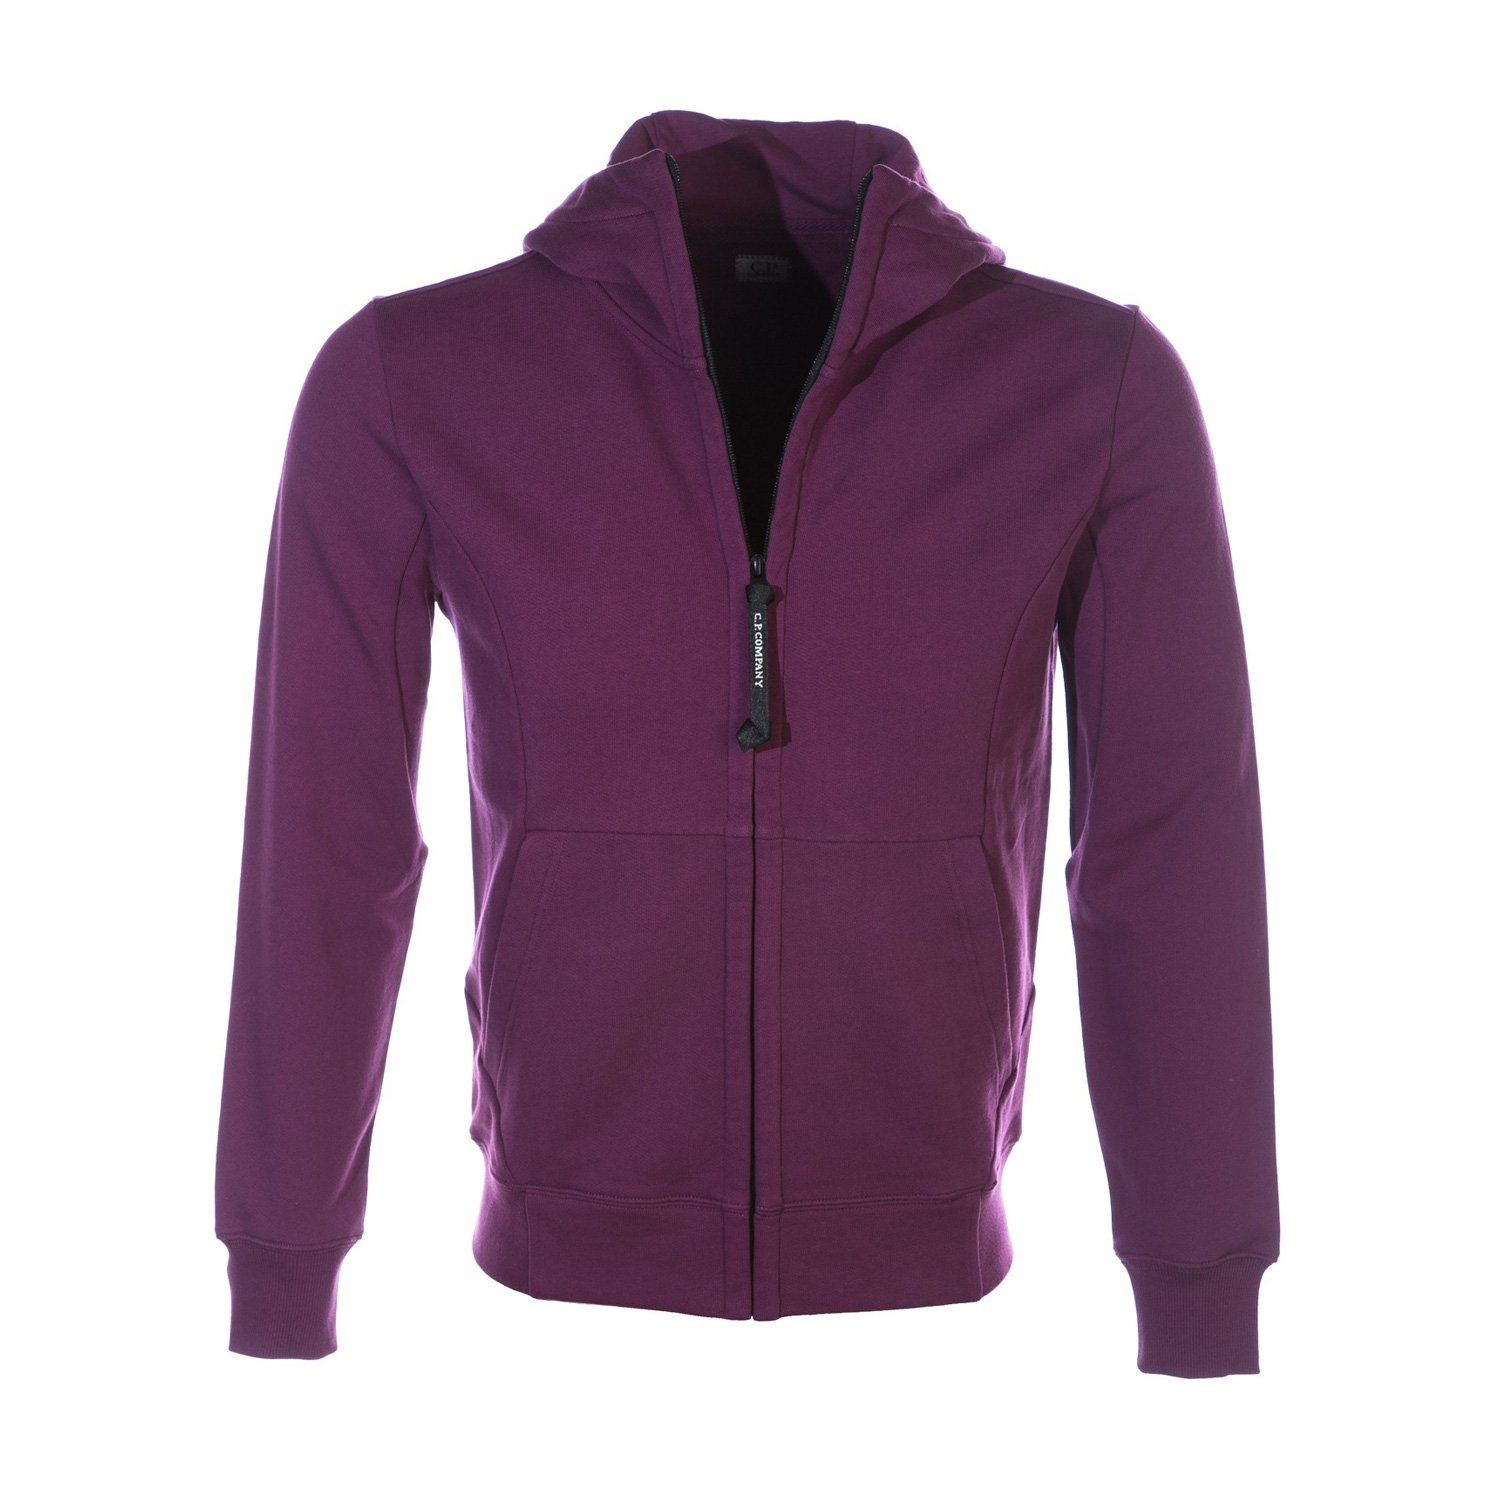 CP Company Full Zip Goggle Hooded Sweat Top in Berry